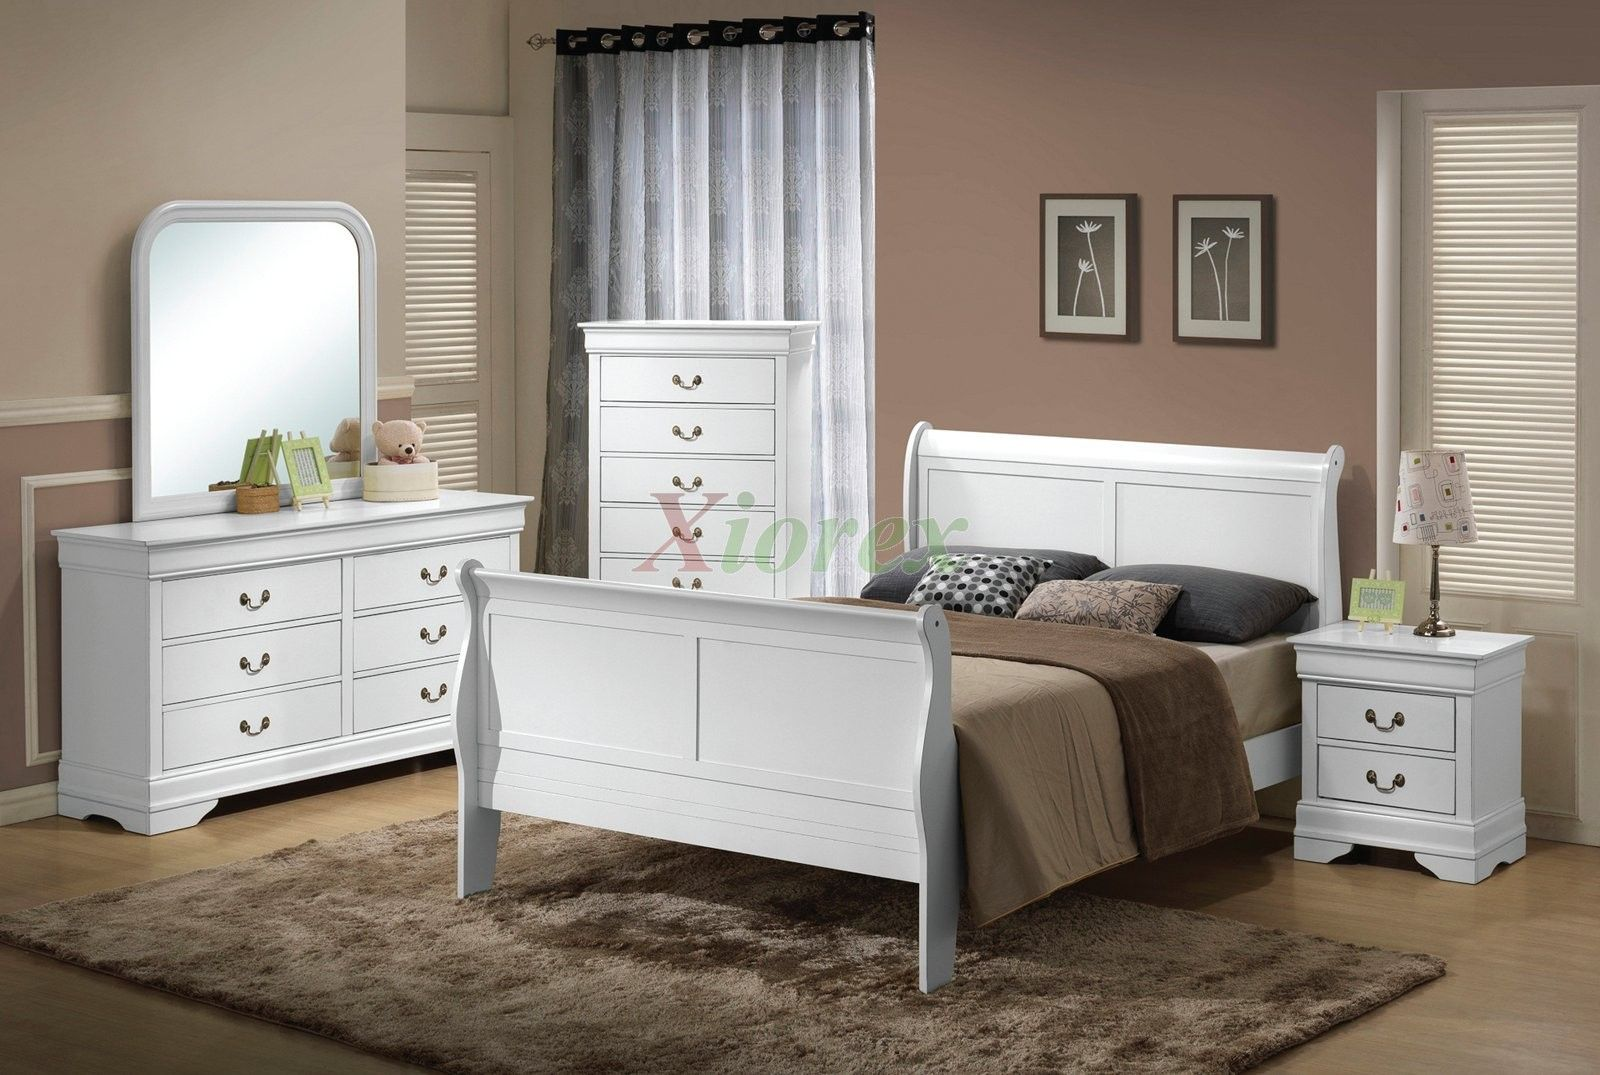 White Distressed Bedroom Furniture Cool Buy Cheap White Wood Bedroom Furniture Sale  Contemporary Wood Design Inspiration